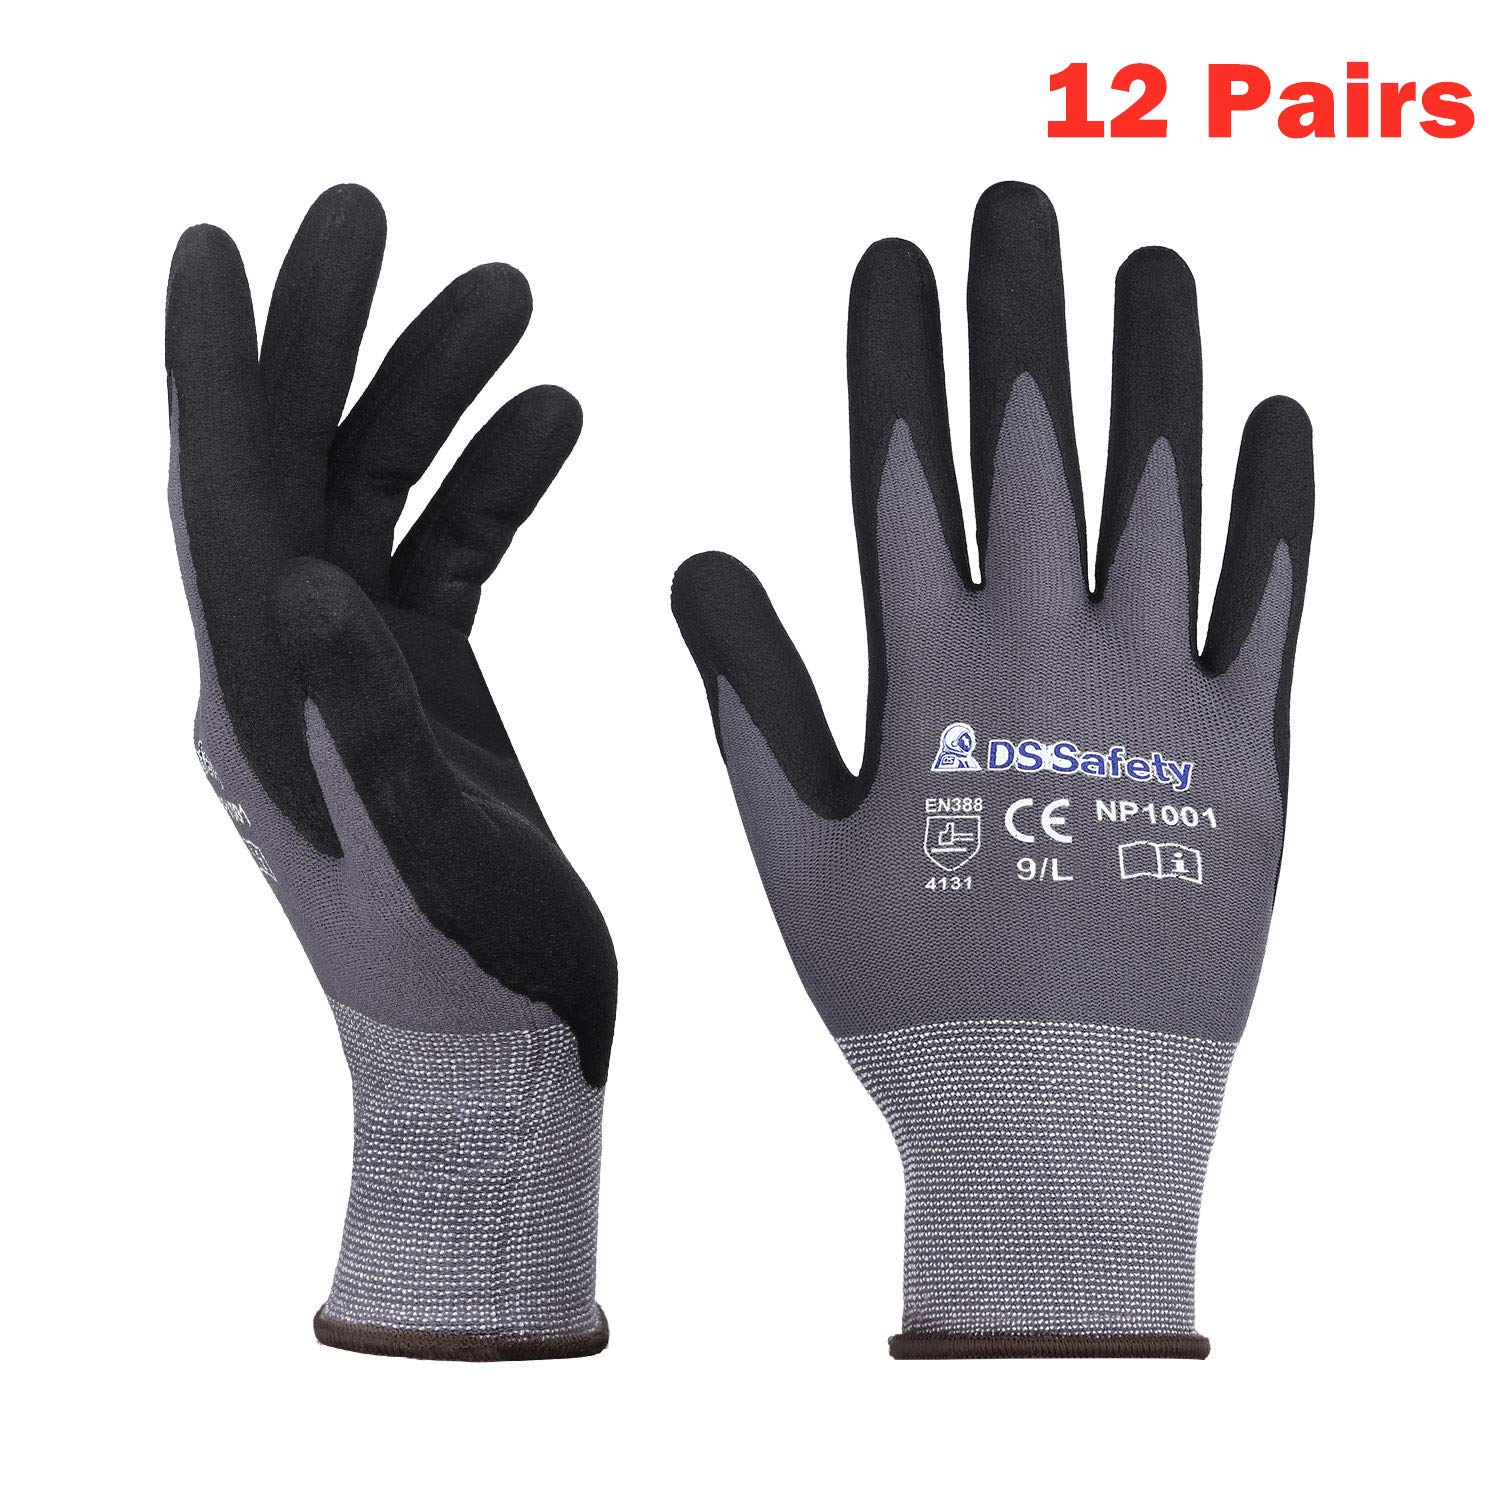 DS Safety NP1001 Nylon Knit Work Gloves with Micro Foam Technology & Spandex Liner Nitrile Coated Work Gloves CE Approved 15 gauge Ergonomic Design Men's Thin Working Gloves 12Pairs (Large)